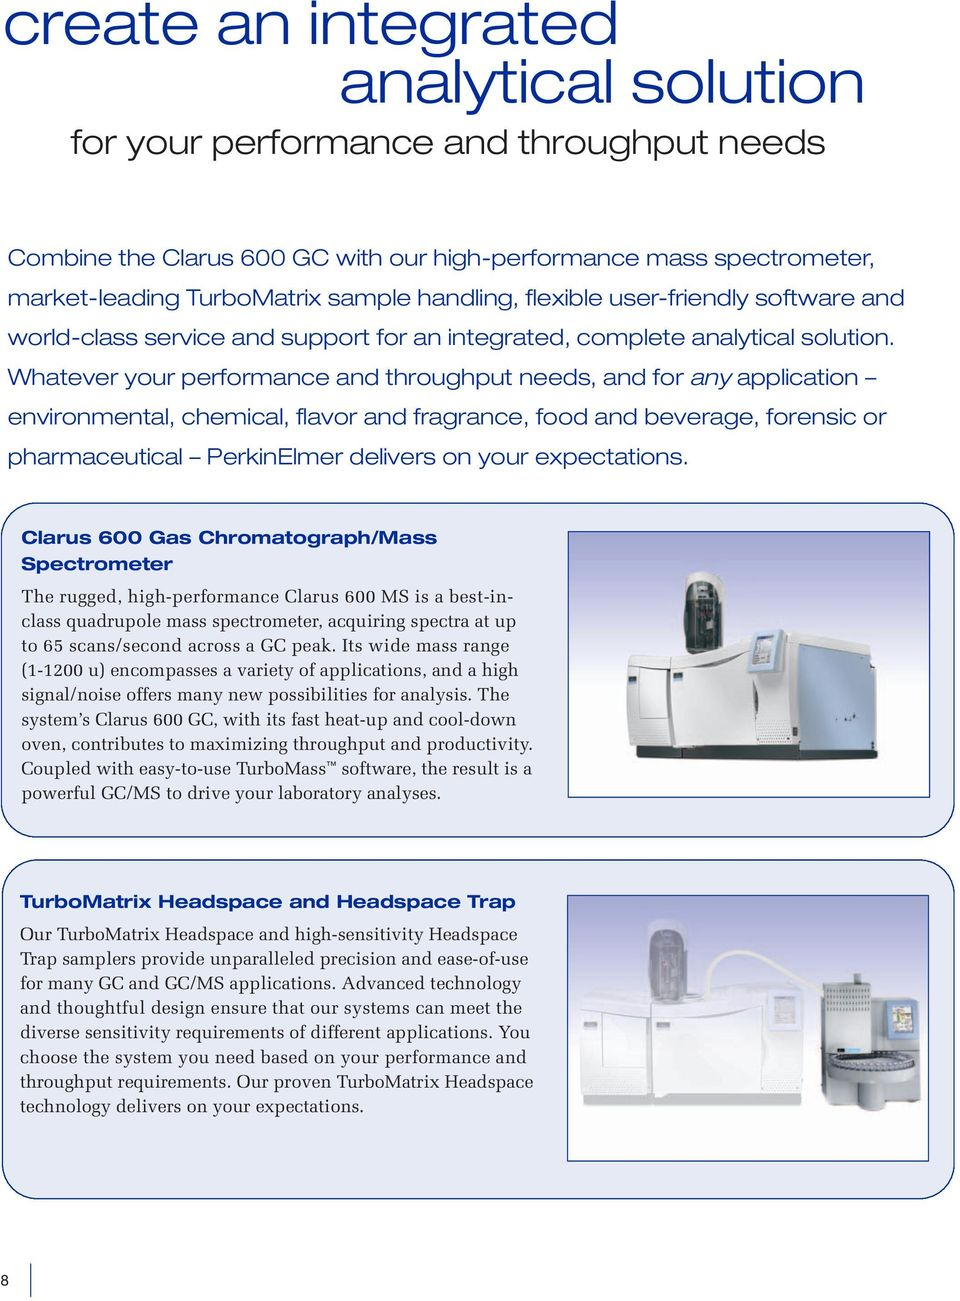 Whatever your performance and throughput needs, and for any application environmental, chemical, flavor and fragrance, food and beverage, forensic or pharmaceutical PerkinElmer delivers on your